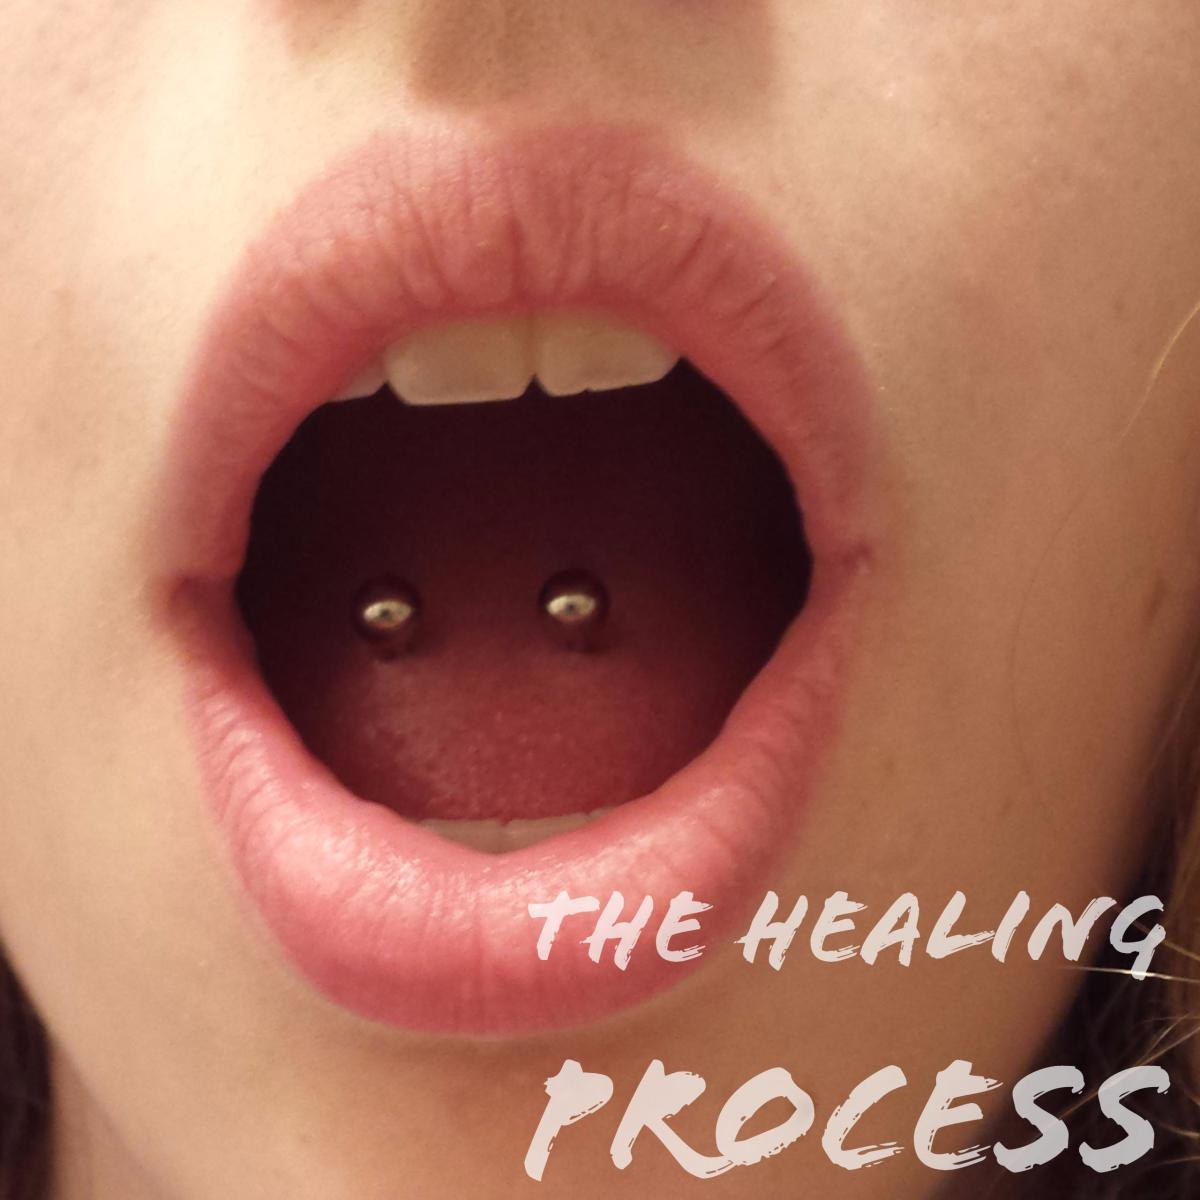 The Healing Process of a Tongue Piercing (With Pictures)